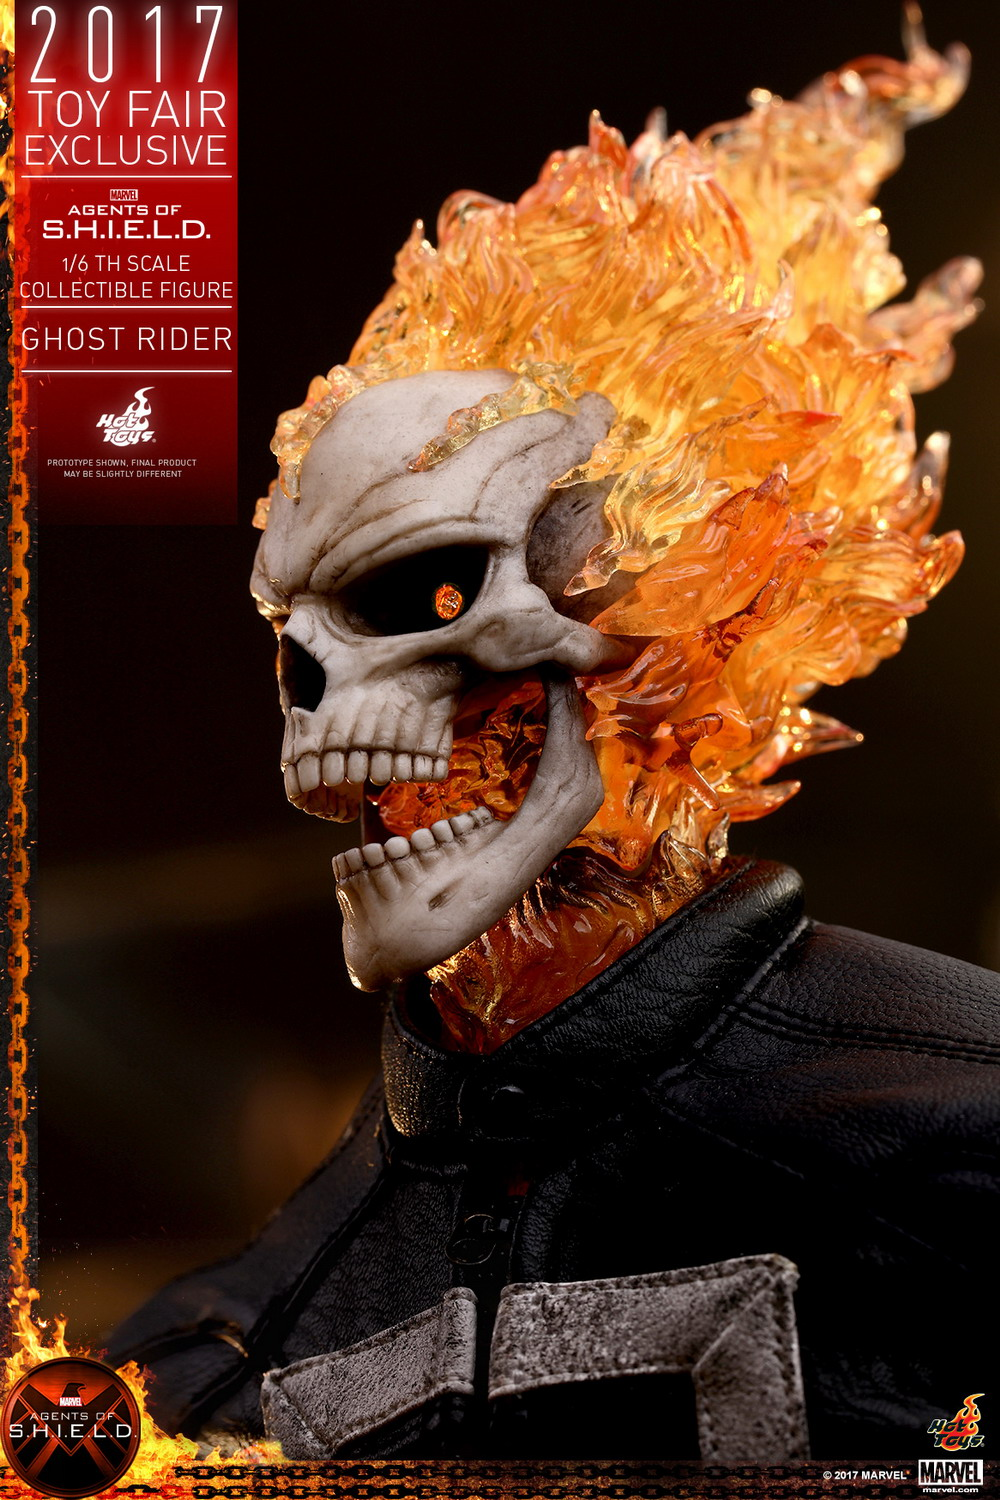 Hot Toys Agents of S.H.I.E.L.D. 1/6th scale Ghost Rider | Figures.com